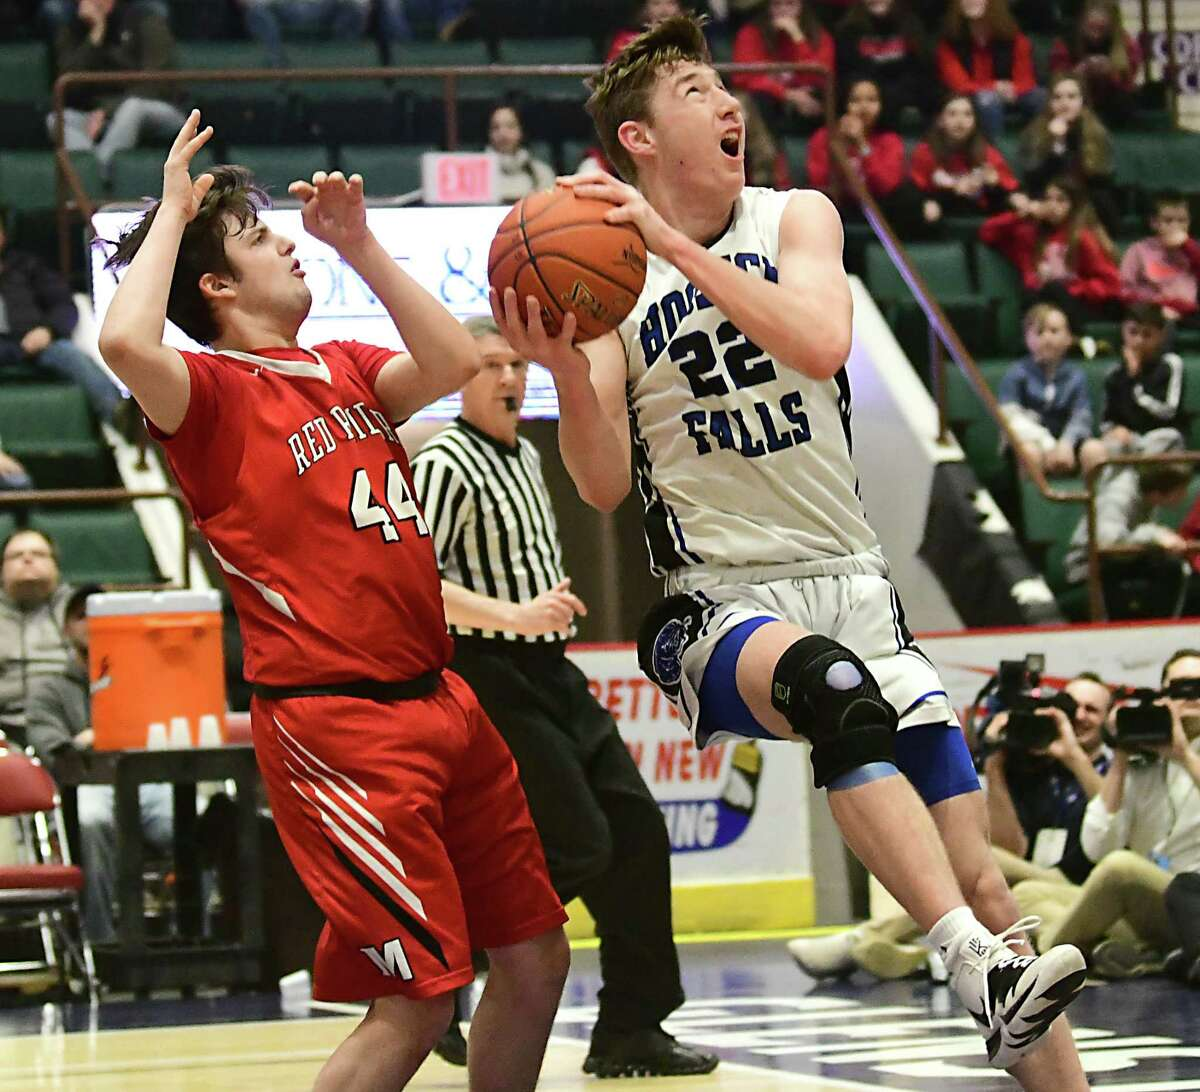 Hoosick Falls' Tristan Williams drives to the basket past Mechanicville's Devin Garland during a Class B semifinal game at the Cool Insuring Arena on Monday, March 2, 2020 in Glens Falls, N.Y. (Lori Van Buren/Times Union)